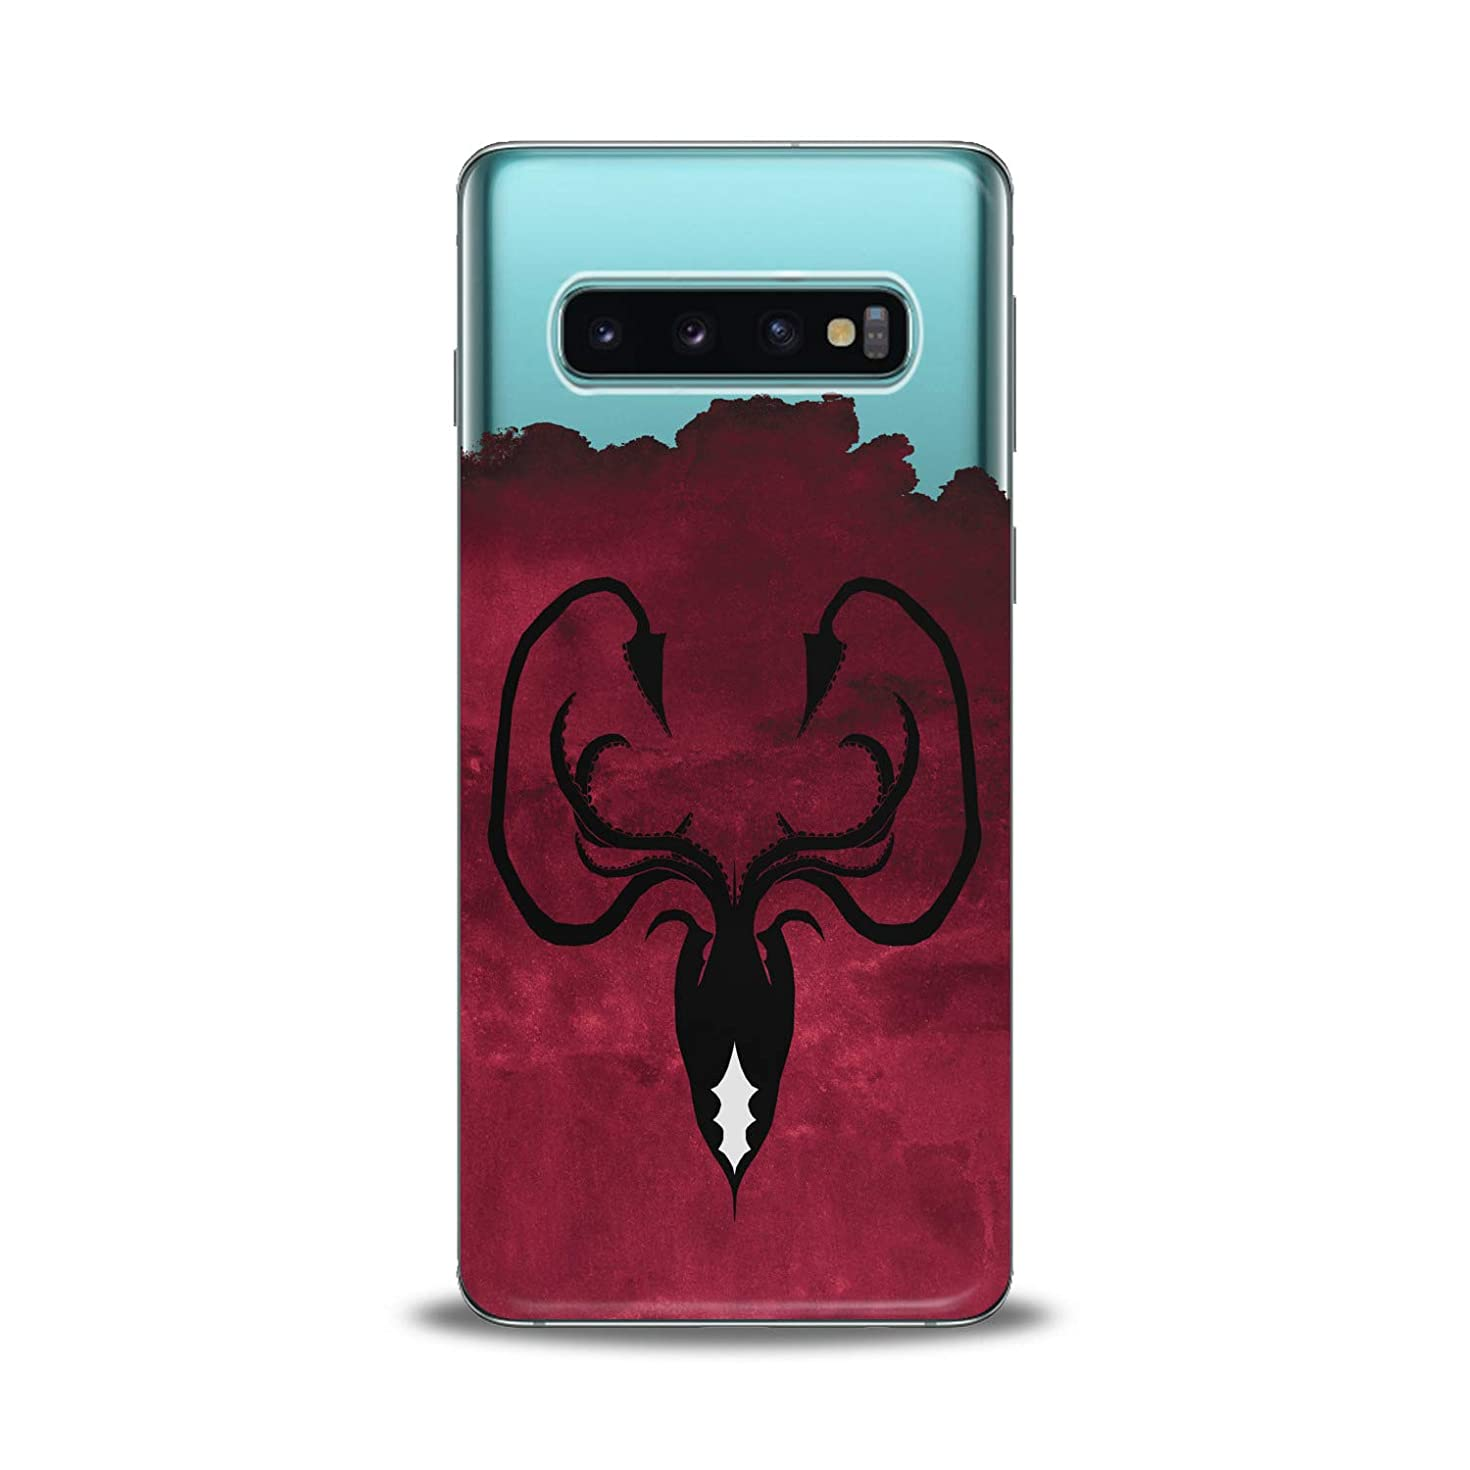 Lex Altern TPU Case for Samsung Galaxy s10 5G Plus 10e Note 9 s9 s8 s7 Greyjoy Flexible Octopus Symbol Gift Smooth Black Print Slim fit Game of Thrones Cover Soft Clear Red Design Kingdoms Lightweight